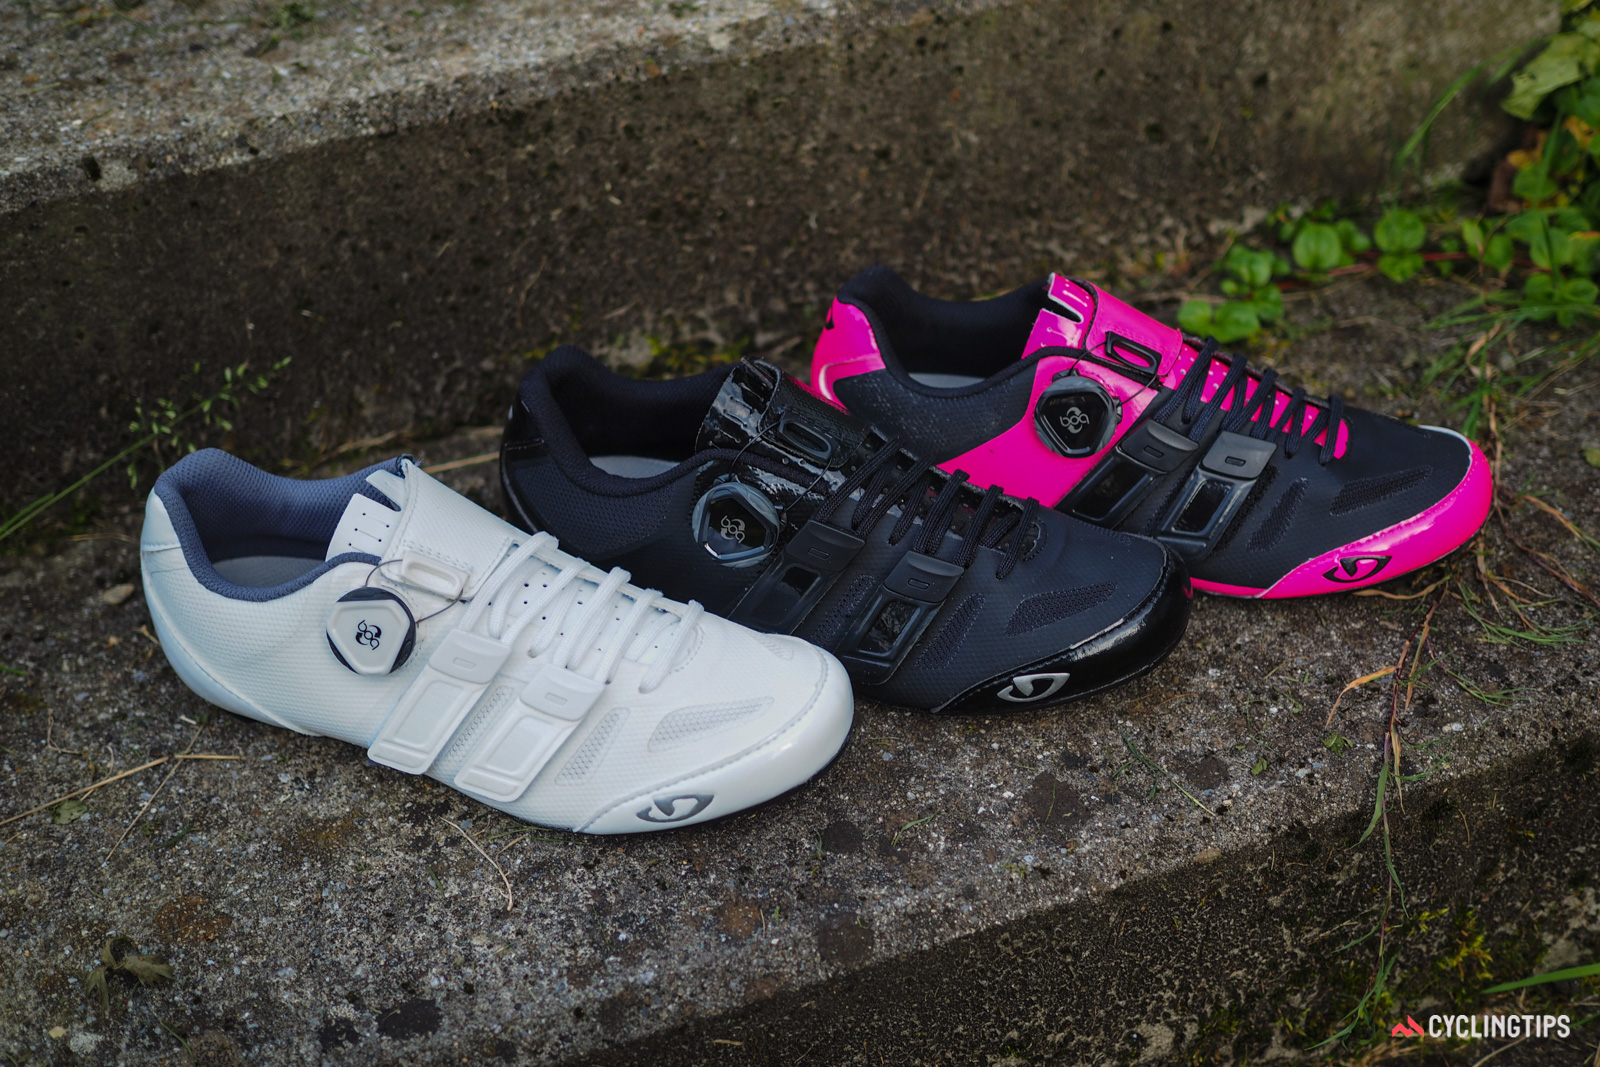 Like the Giro Factress Techlace model, the Raes Techlace shoe is built around a women-specific last. Three colors will be available. Retail price will be US$250 / €250 when they begin arriving in shops in October. UK and AU pricing is TBC.